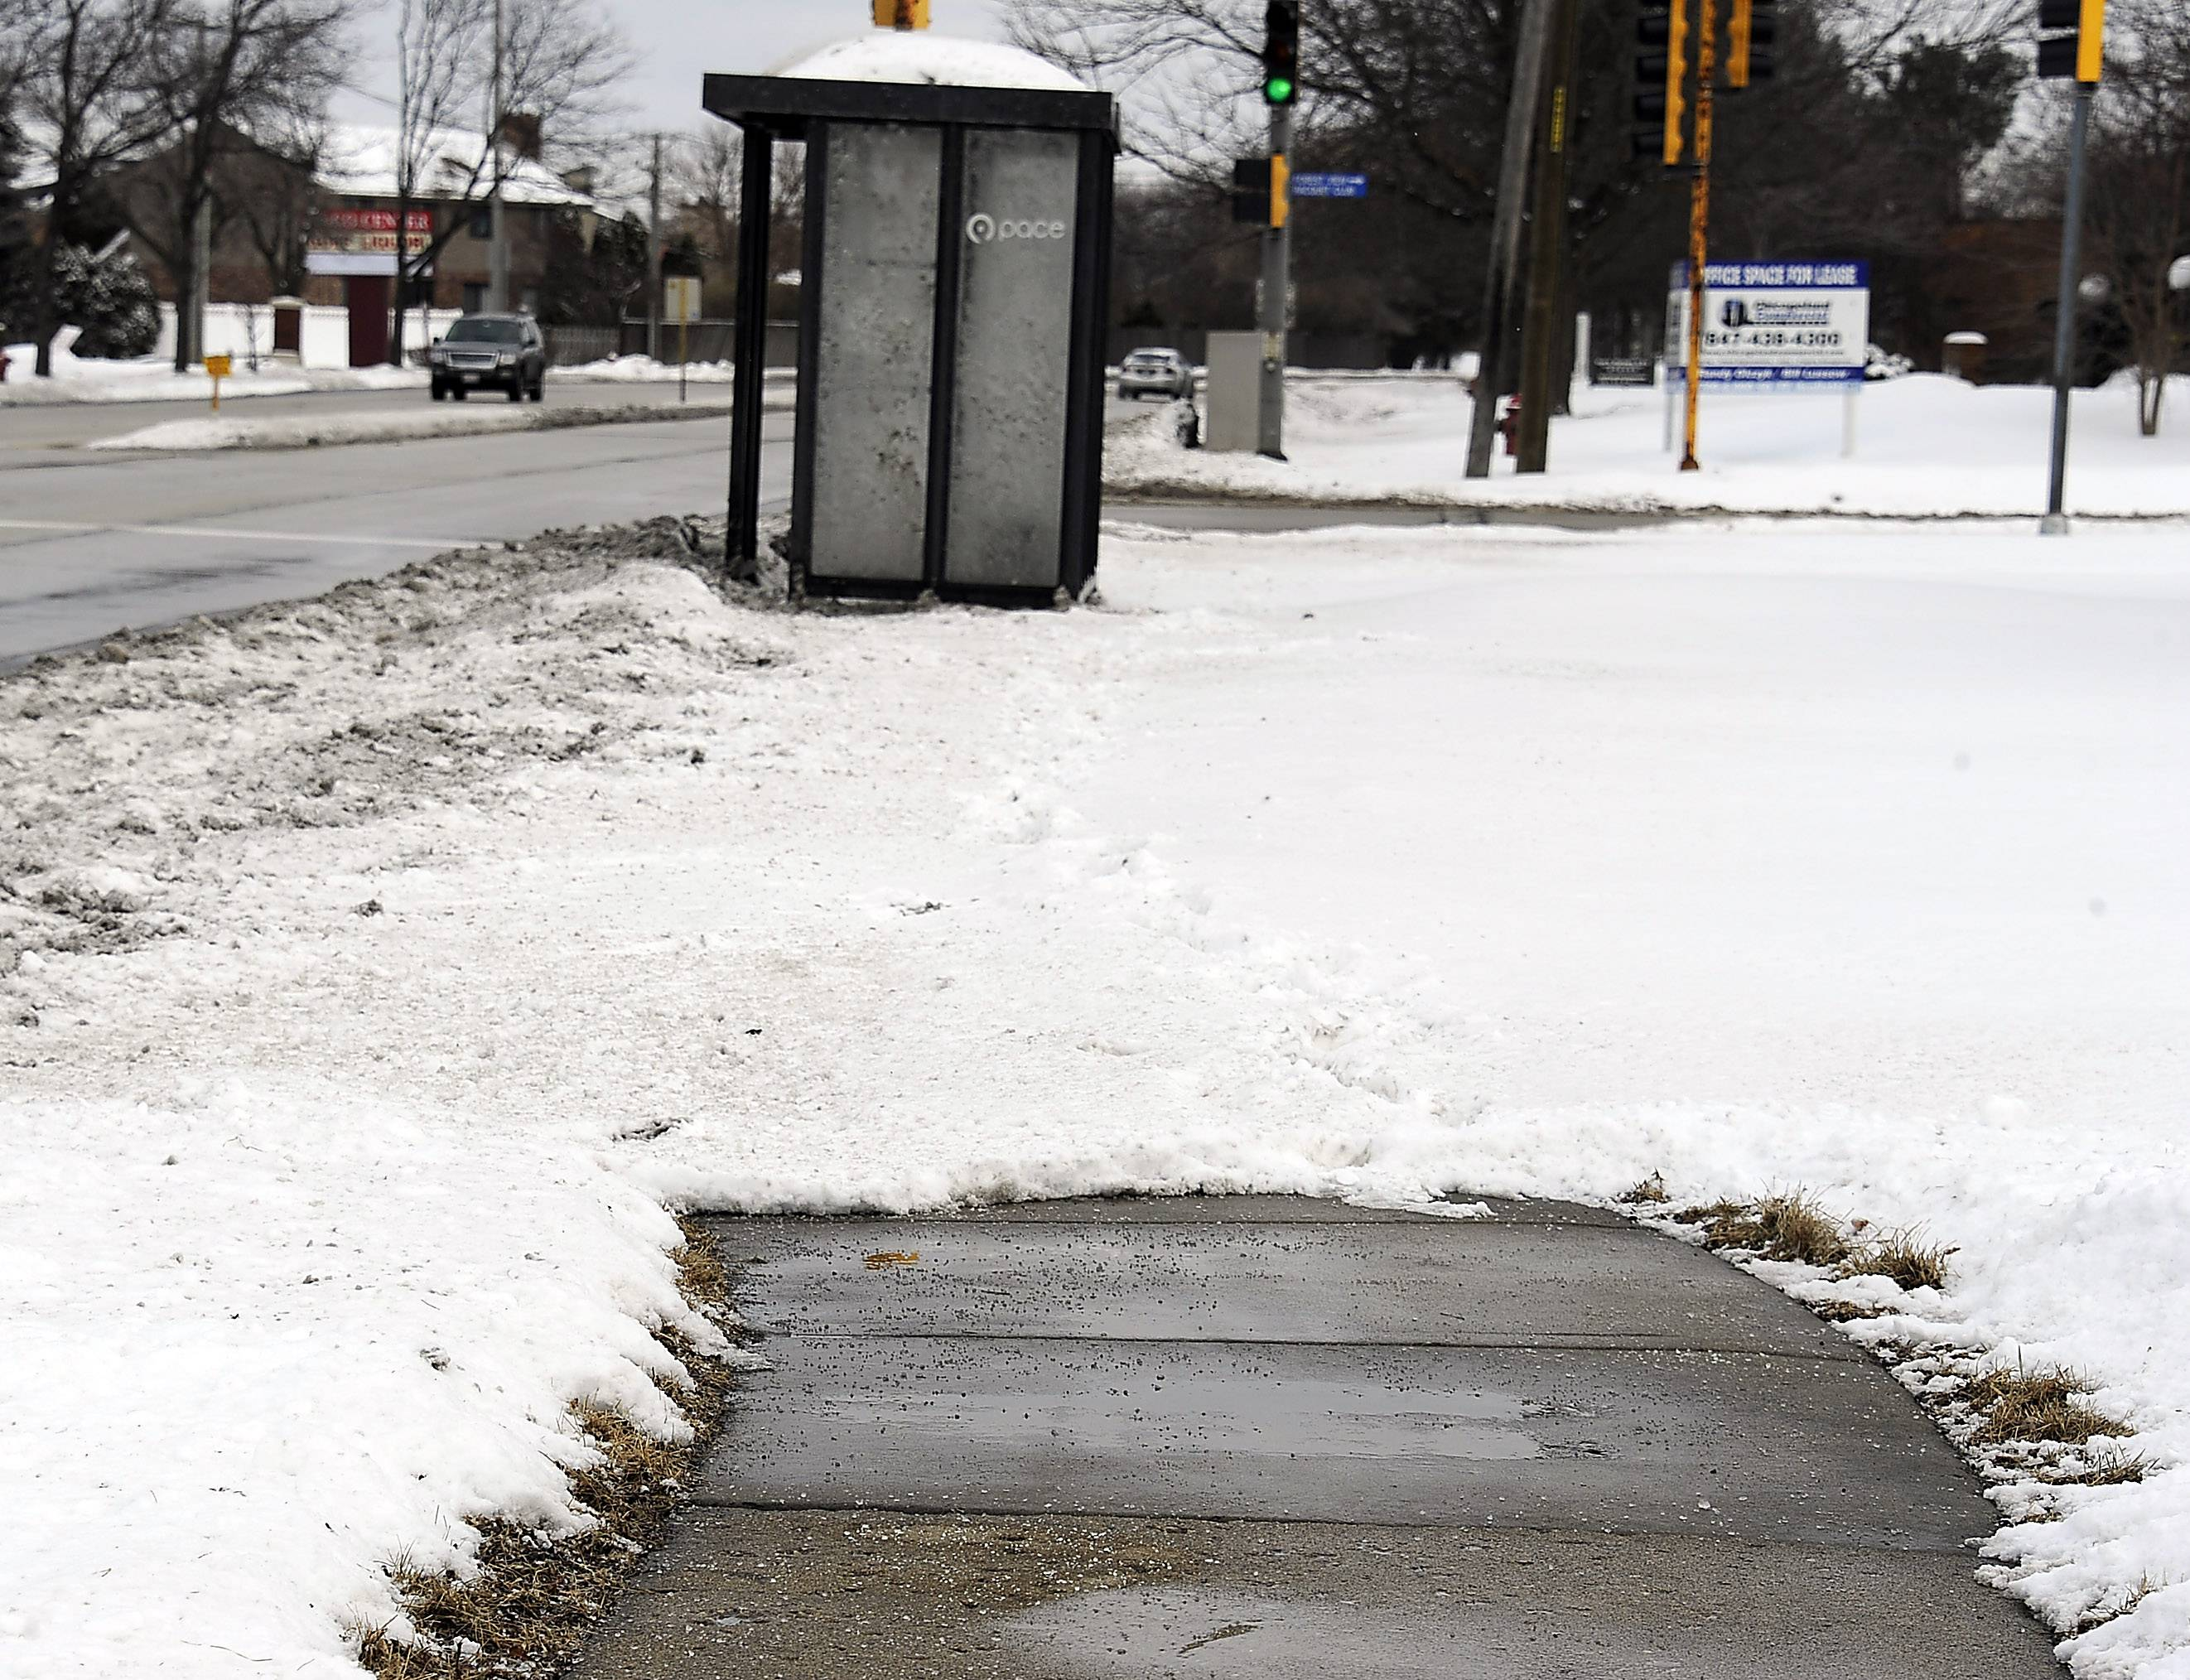 The snow removal only goes so far on this sidewalk leading up to the Pace bus stop along Golf Road in Arlington Heights.